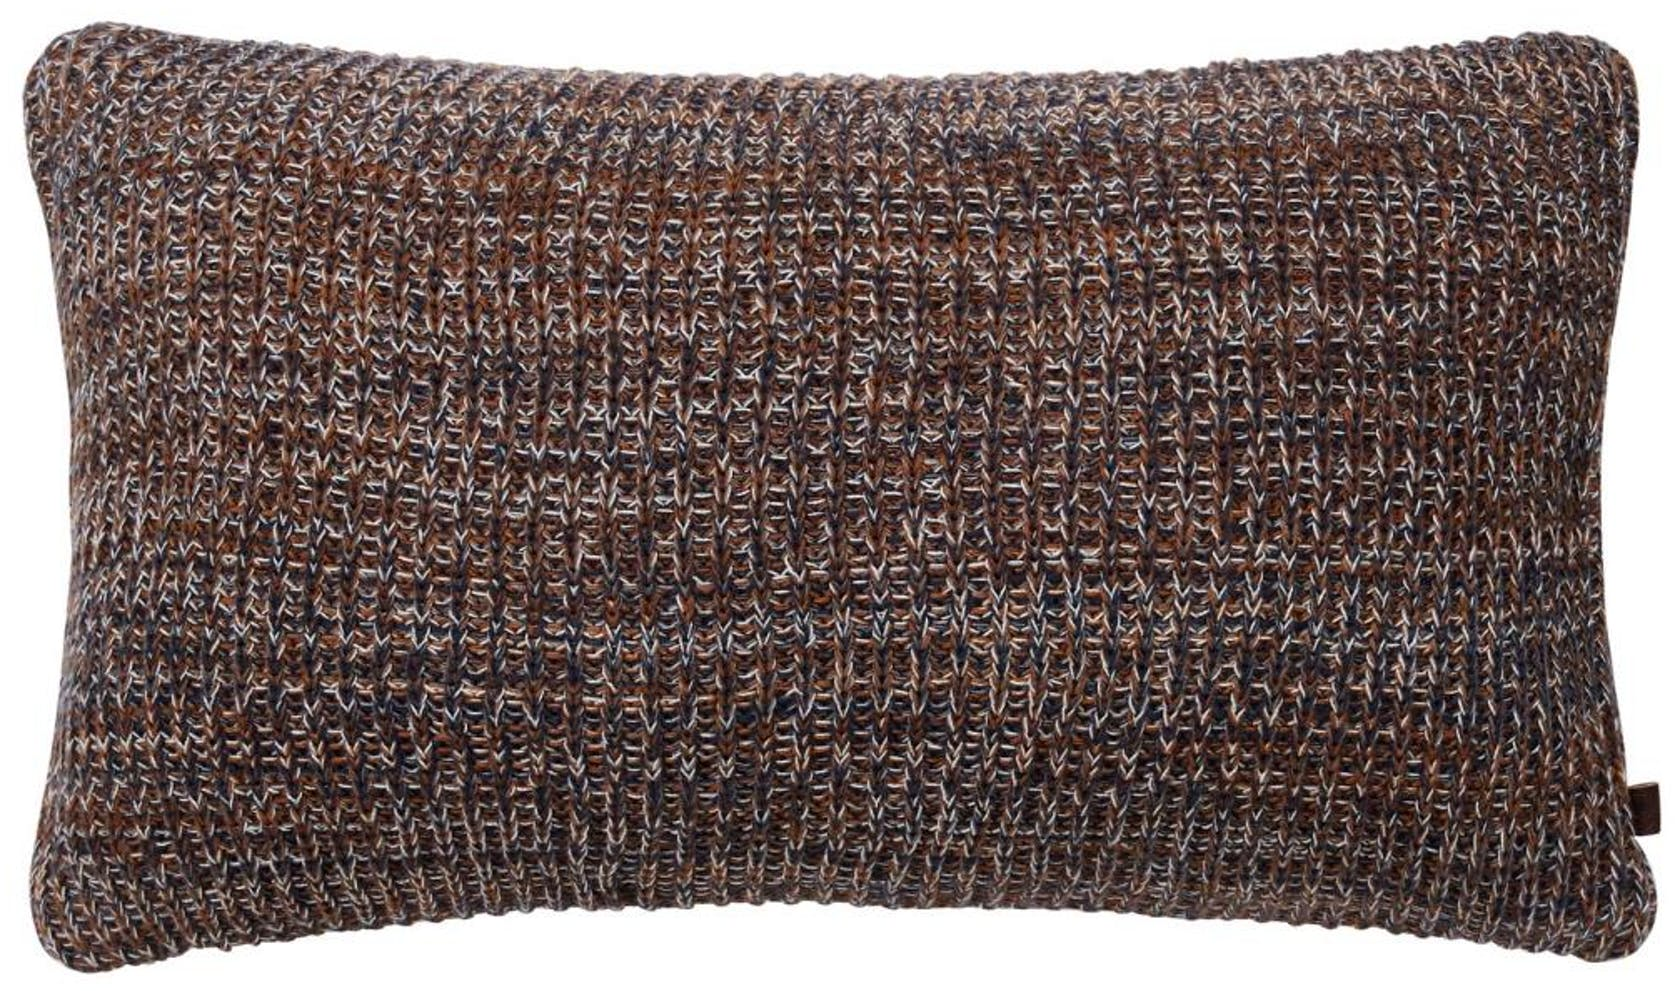 Marc O'Polo Kuara Blue/warm pecan Cushion 30 x 50